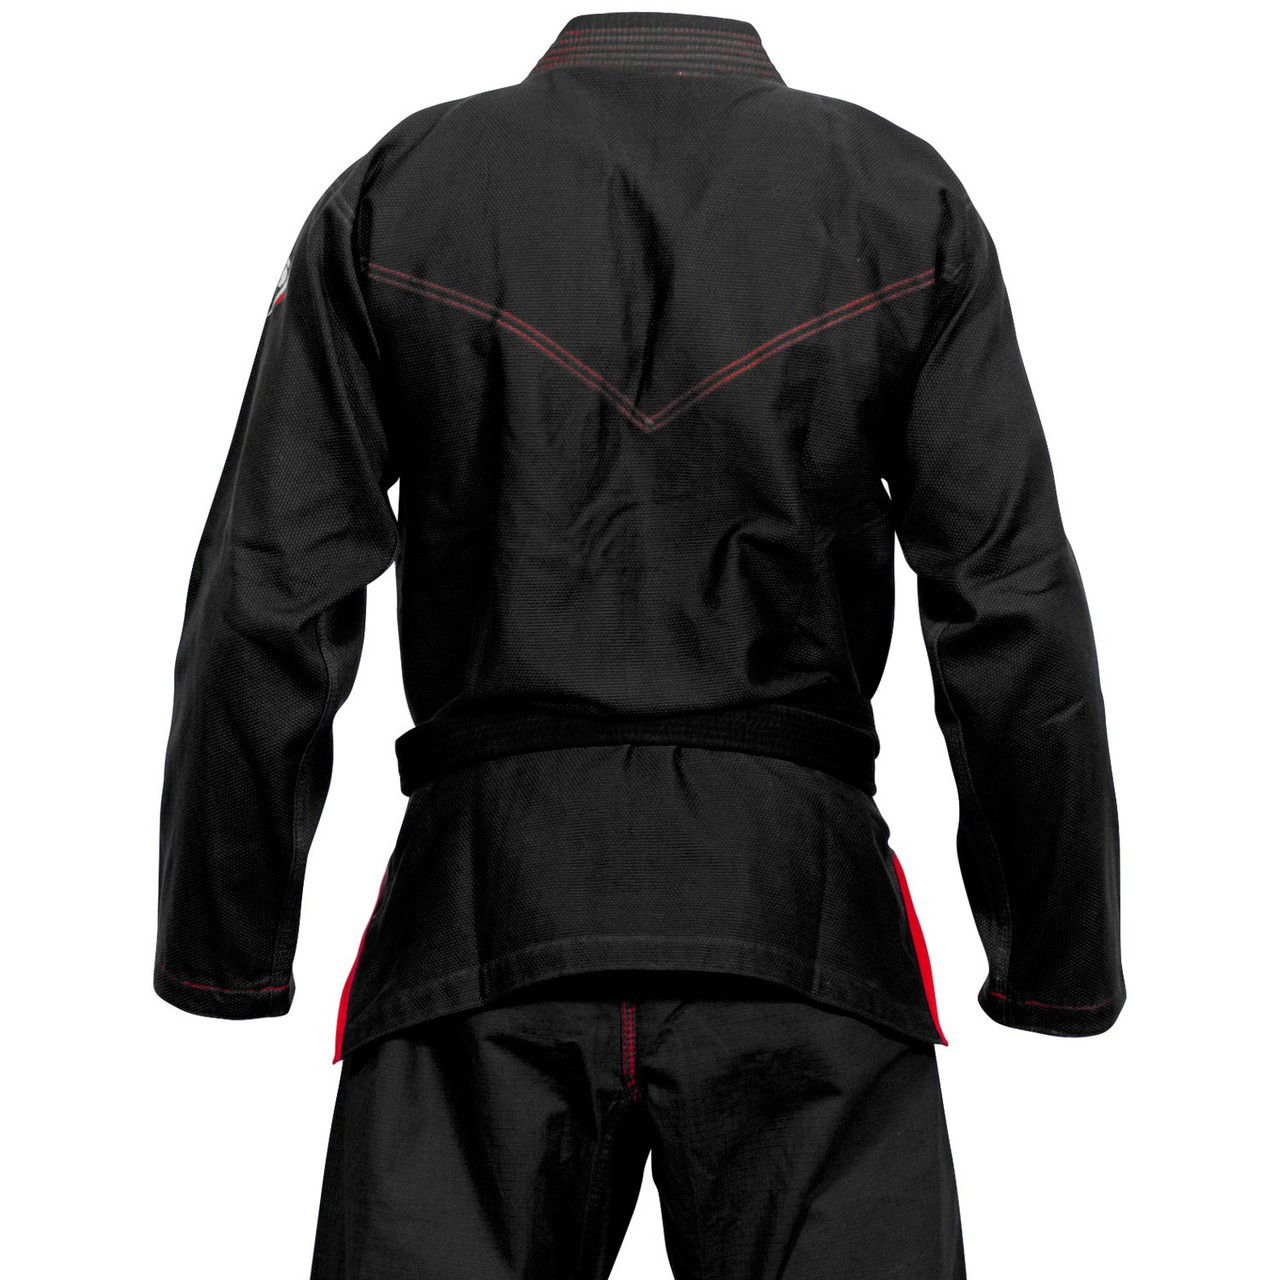 Back of the Venum Elite Light BJJ GI in Black is now available at www.thejiujitsushop.com  Enjoy Free Shipping from The Jiu Jitsu Shop today!